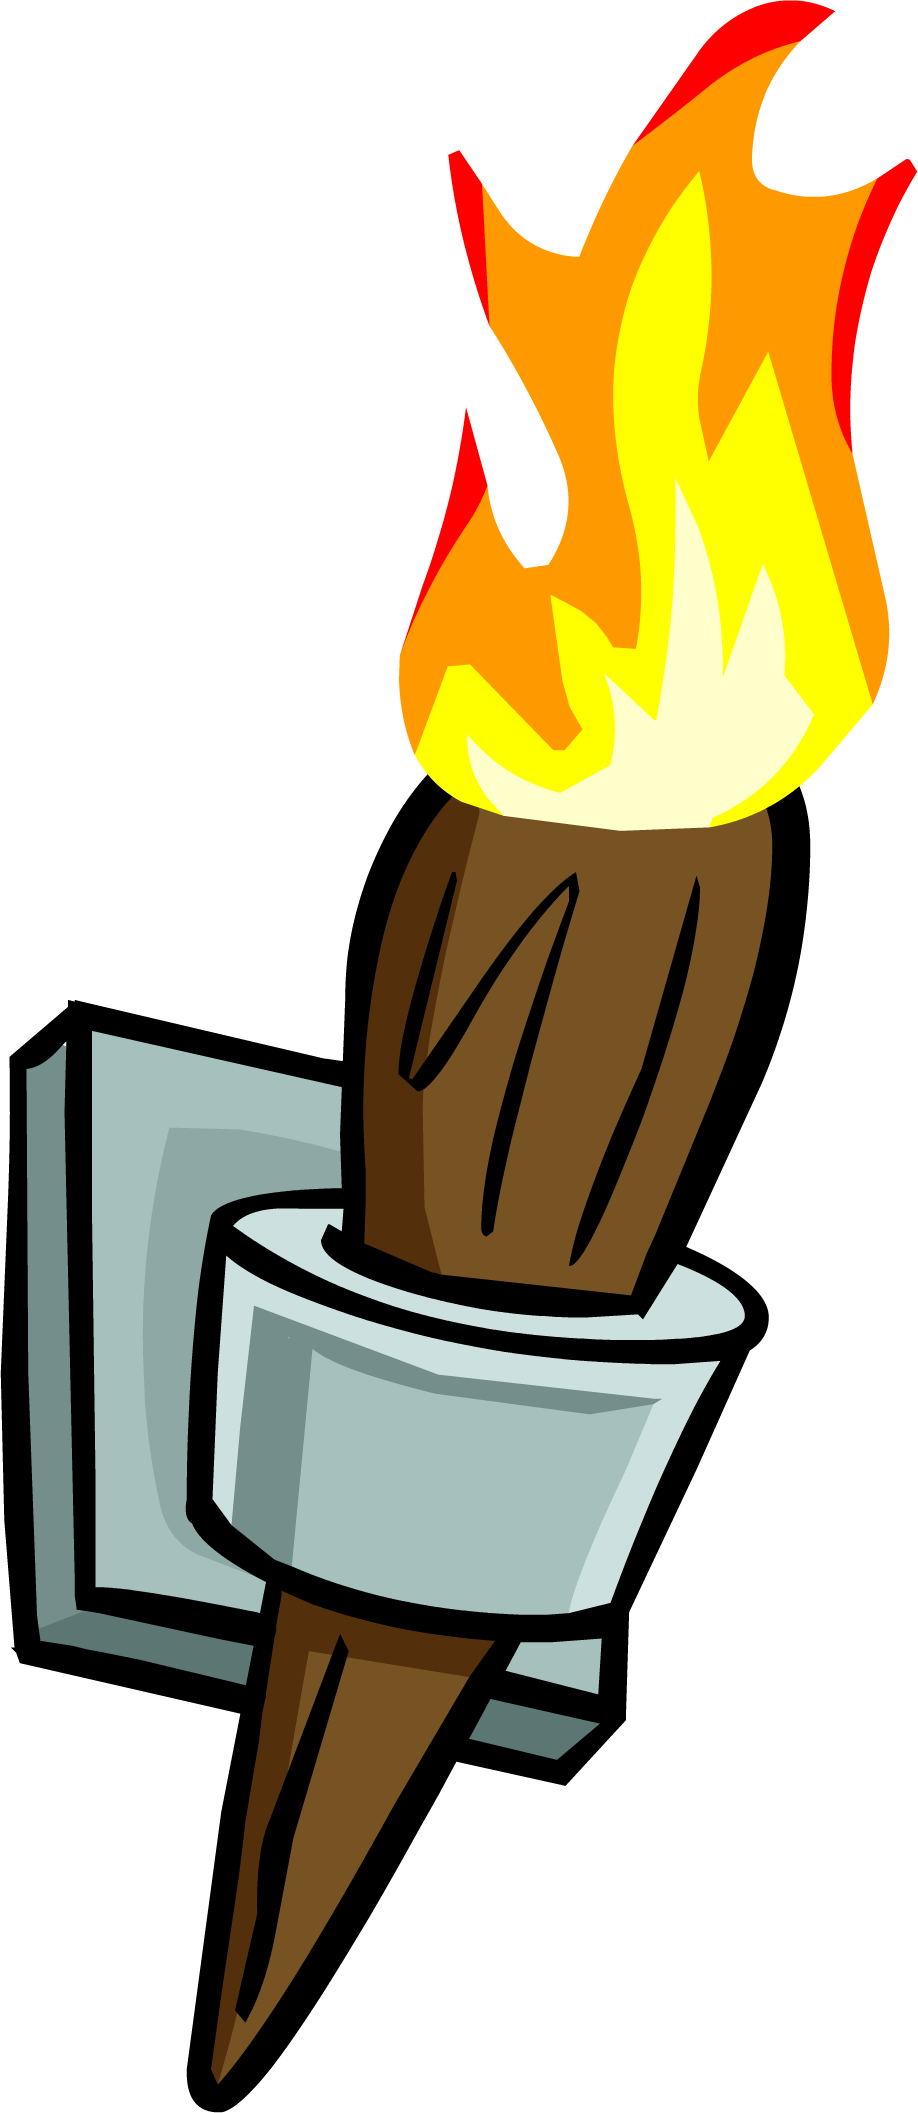 Download Free Torch Free Clipart HD ICON favicon.